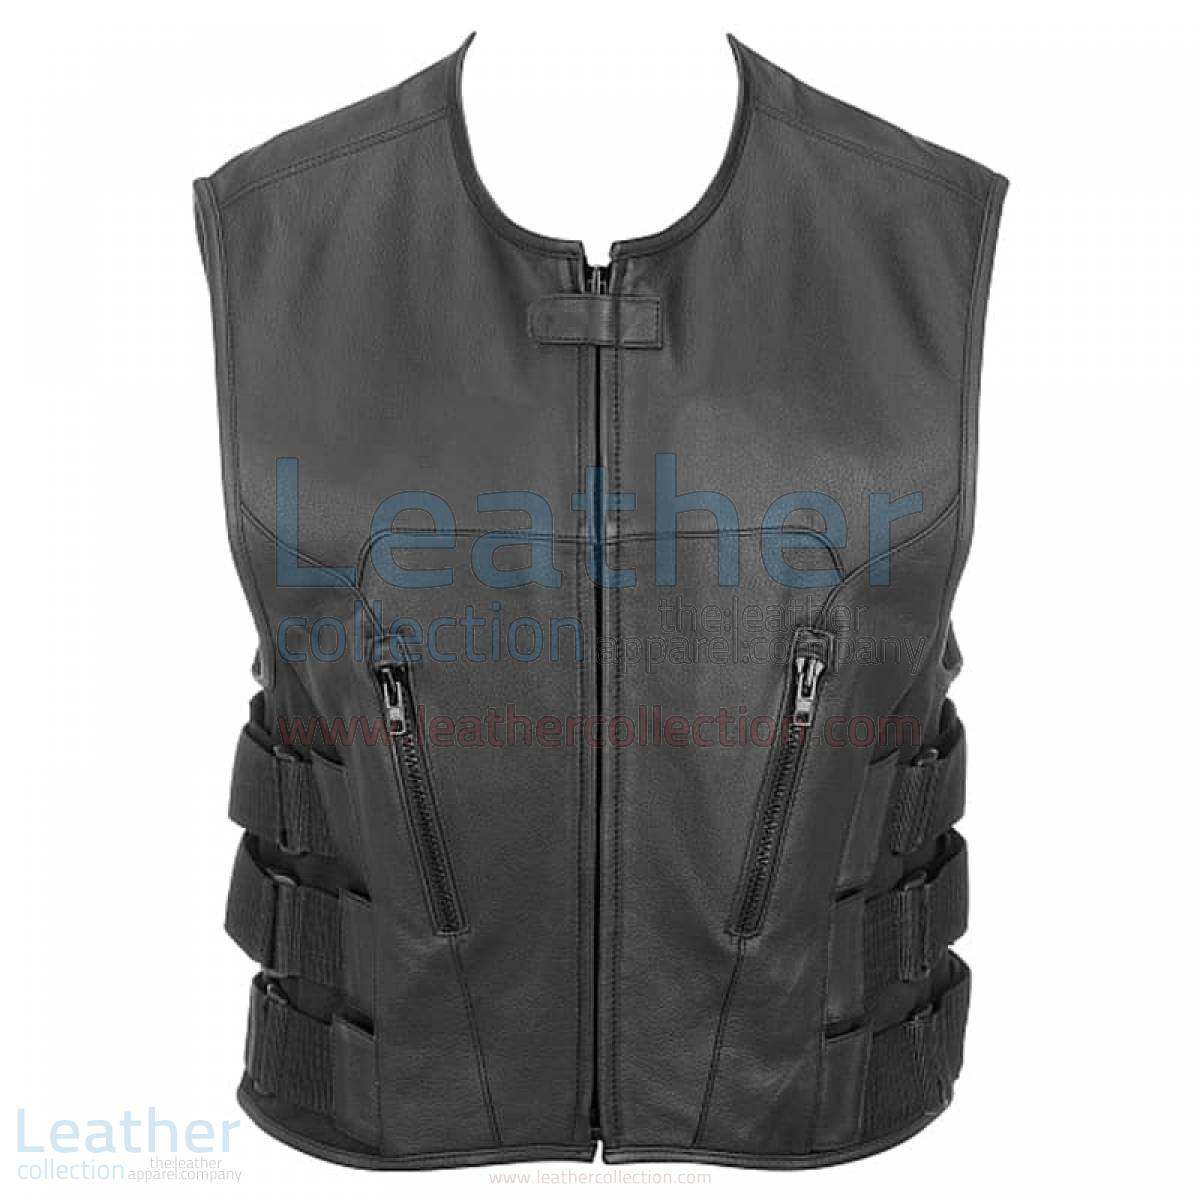 Leather Rider Vest with Velcro Side Straps